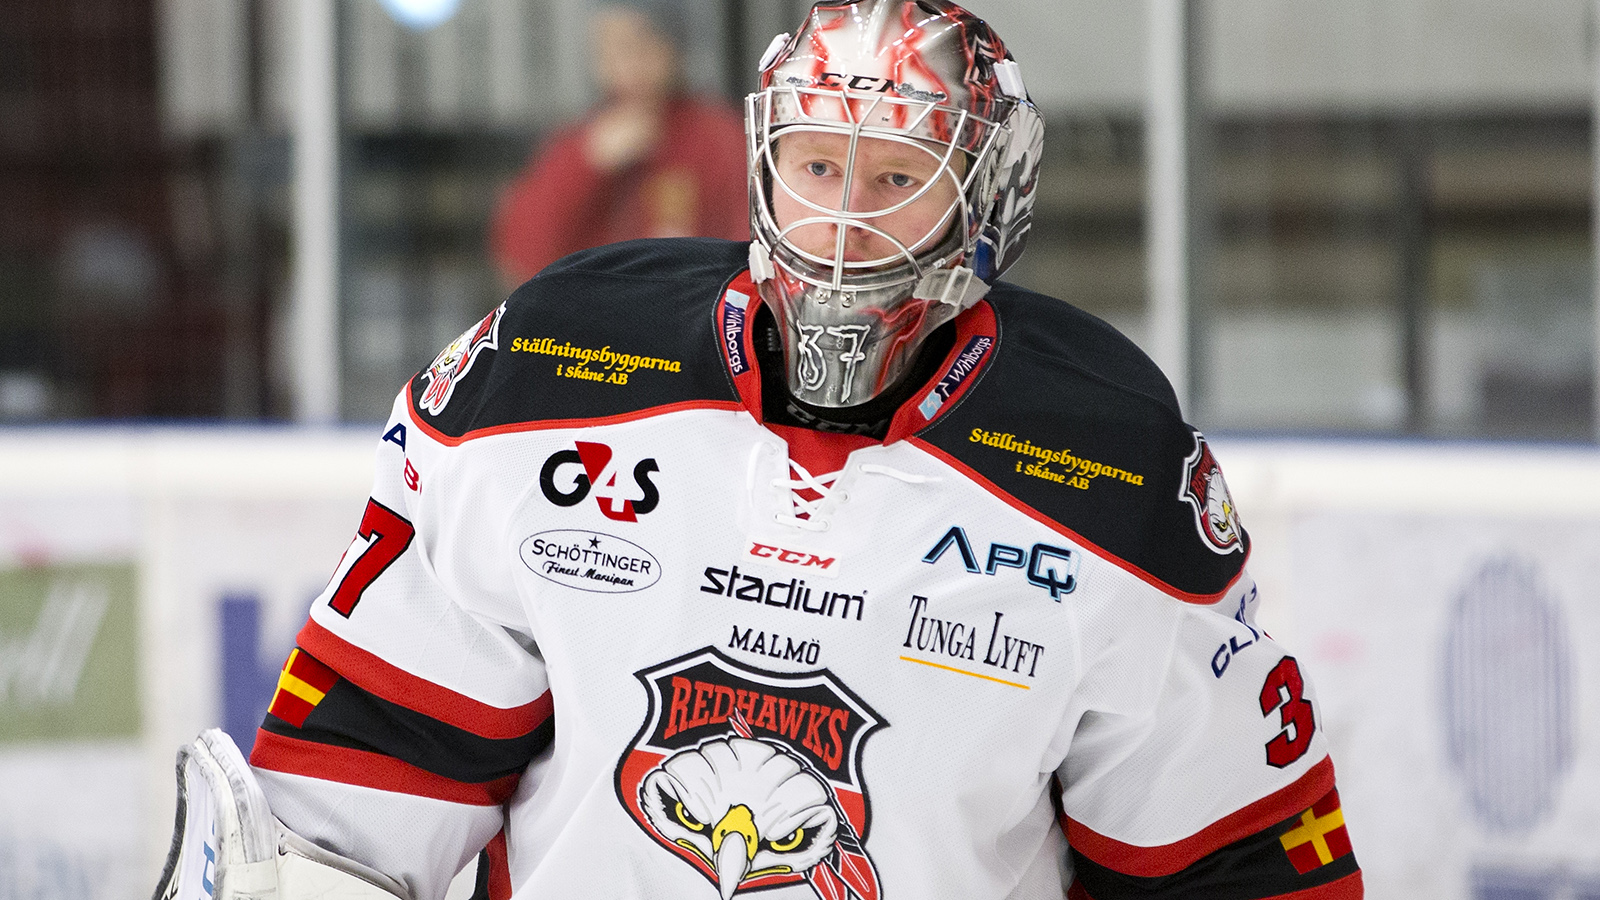 malmo-redhawks-wallpapers-63847-8318890